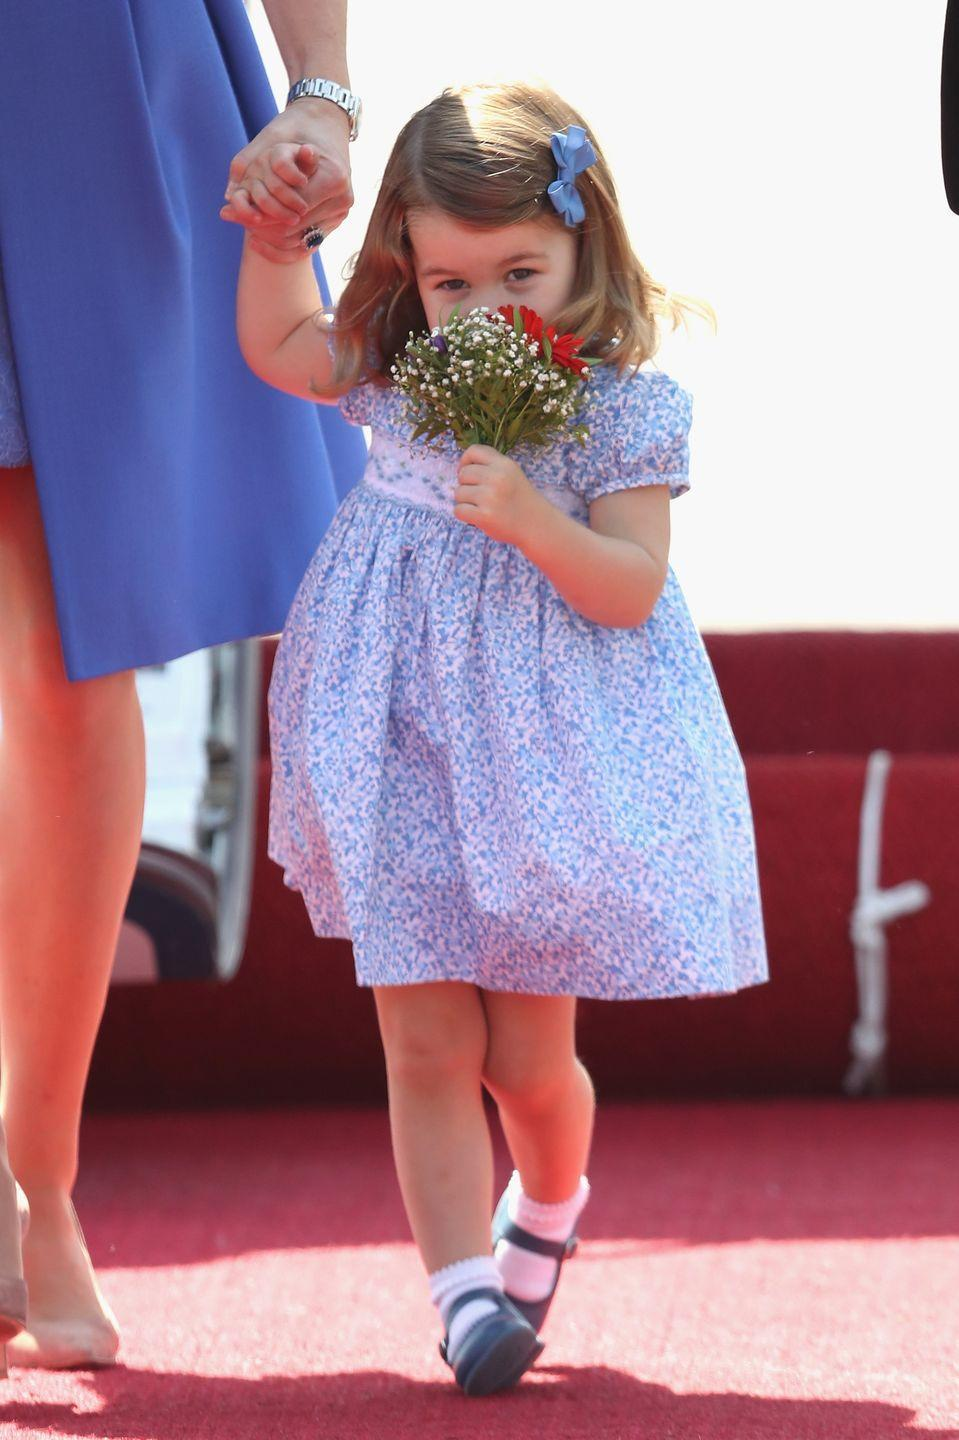 <p>Princess Charlotte smells a fresh bouquet of flowers that she was given as she arrived in Berlin, Germany for her second royal tour in 2017. </p>